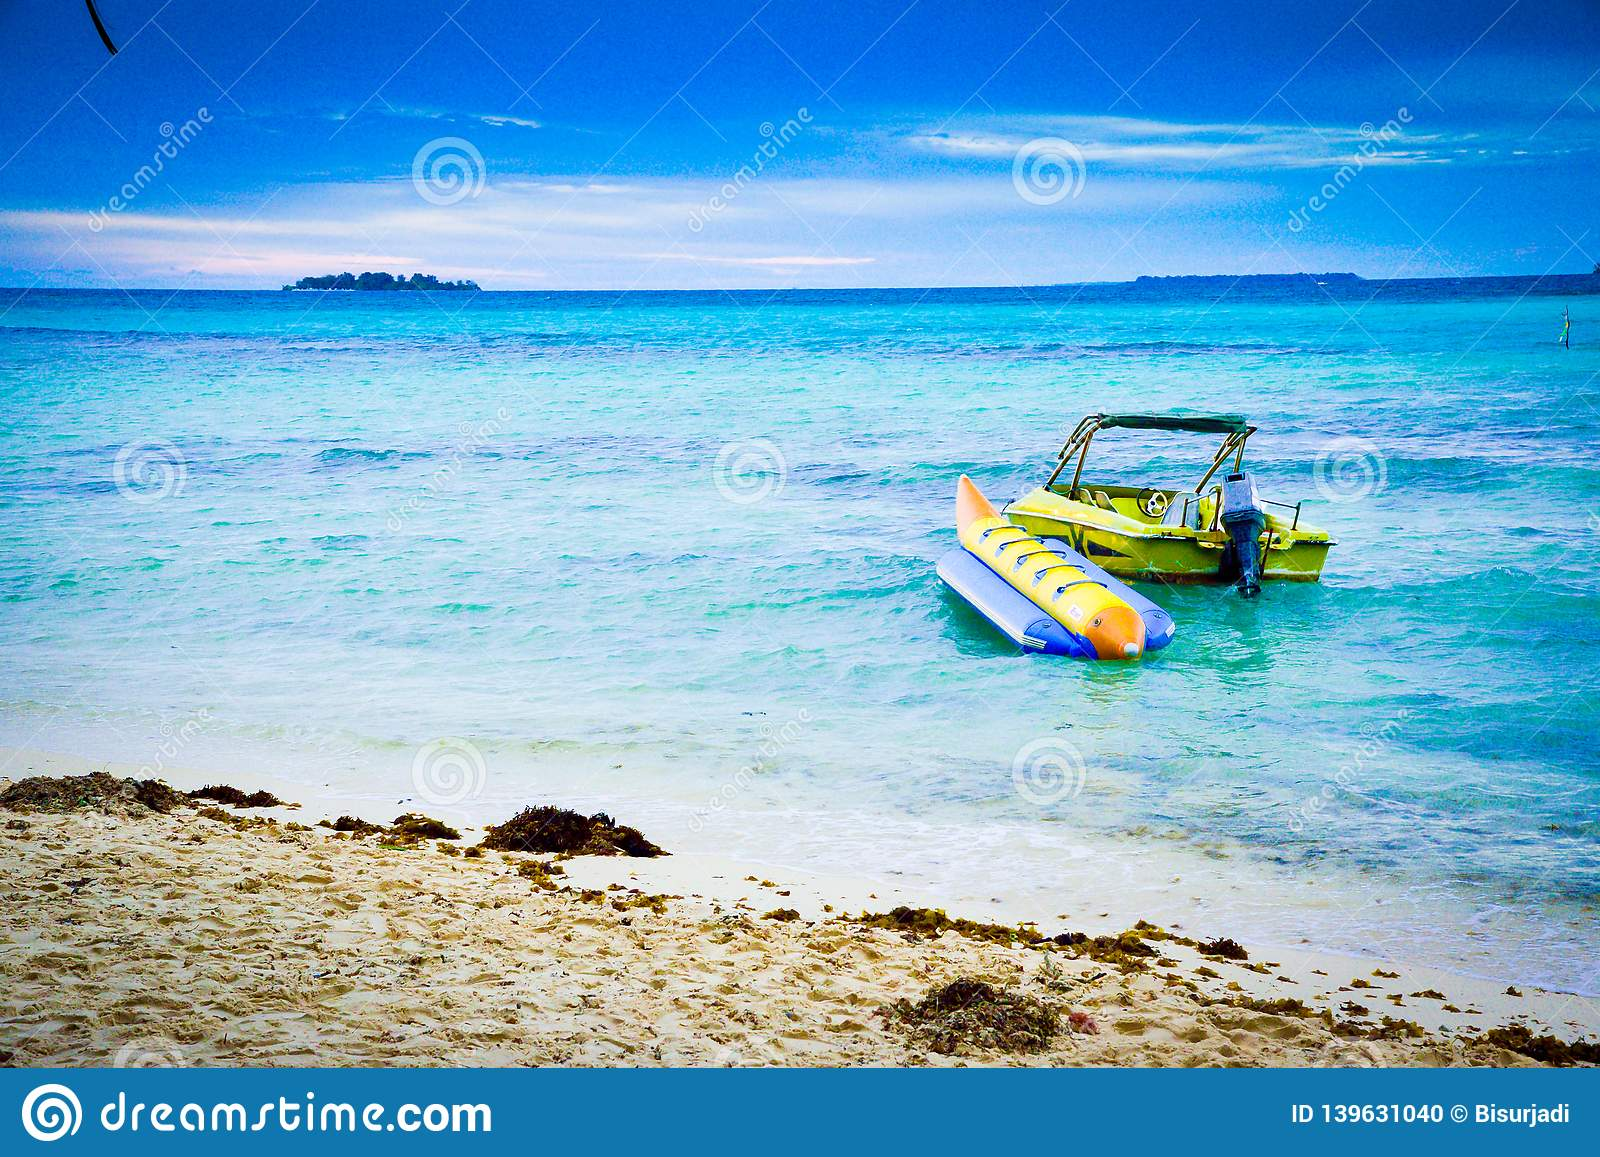 Motor and banana boats in the green sea water ocean under blue cloudy sky